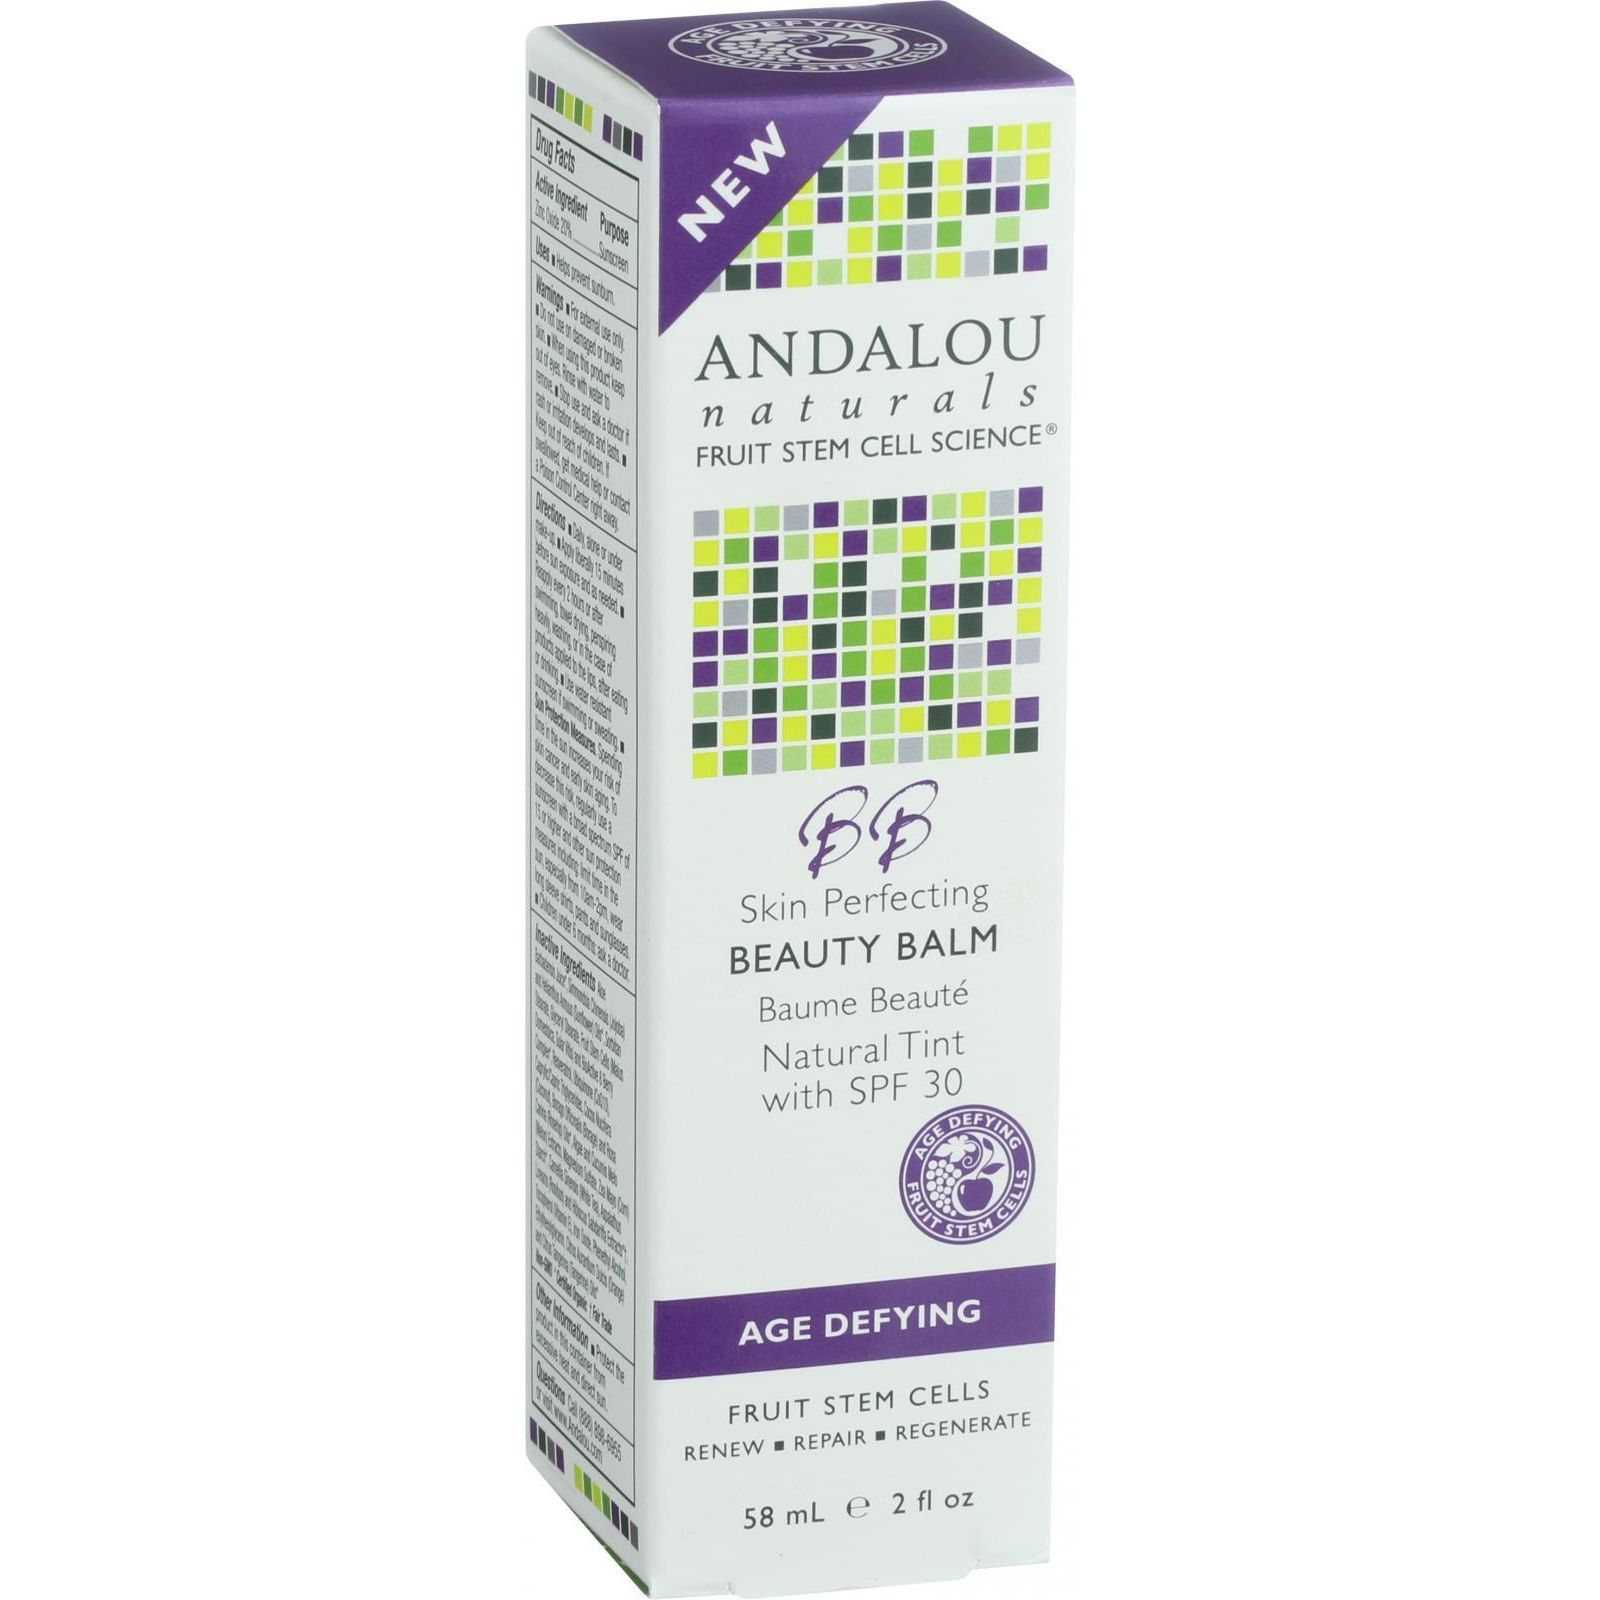 Andalou Naturals Skin Perfecting Beauty Balm  Natural Tint SPF 30  2 oz